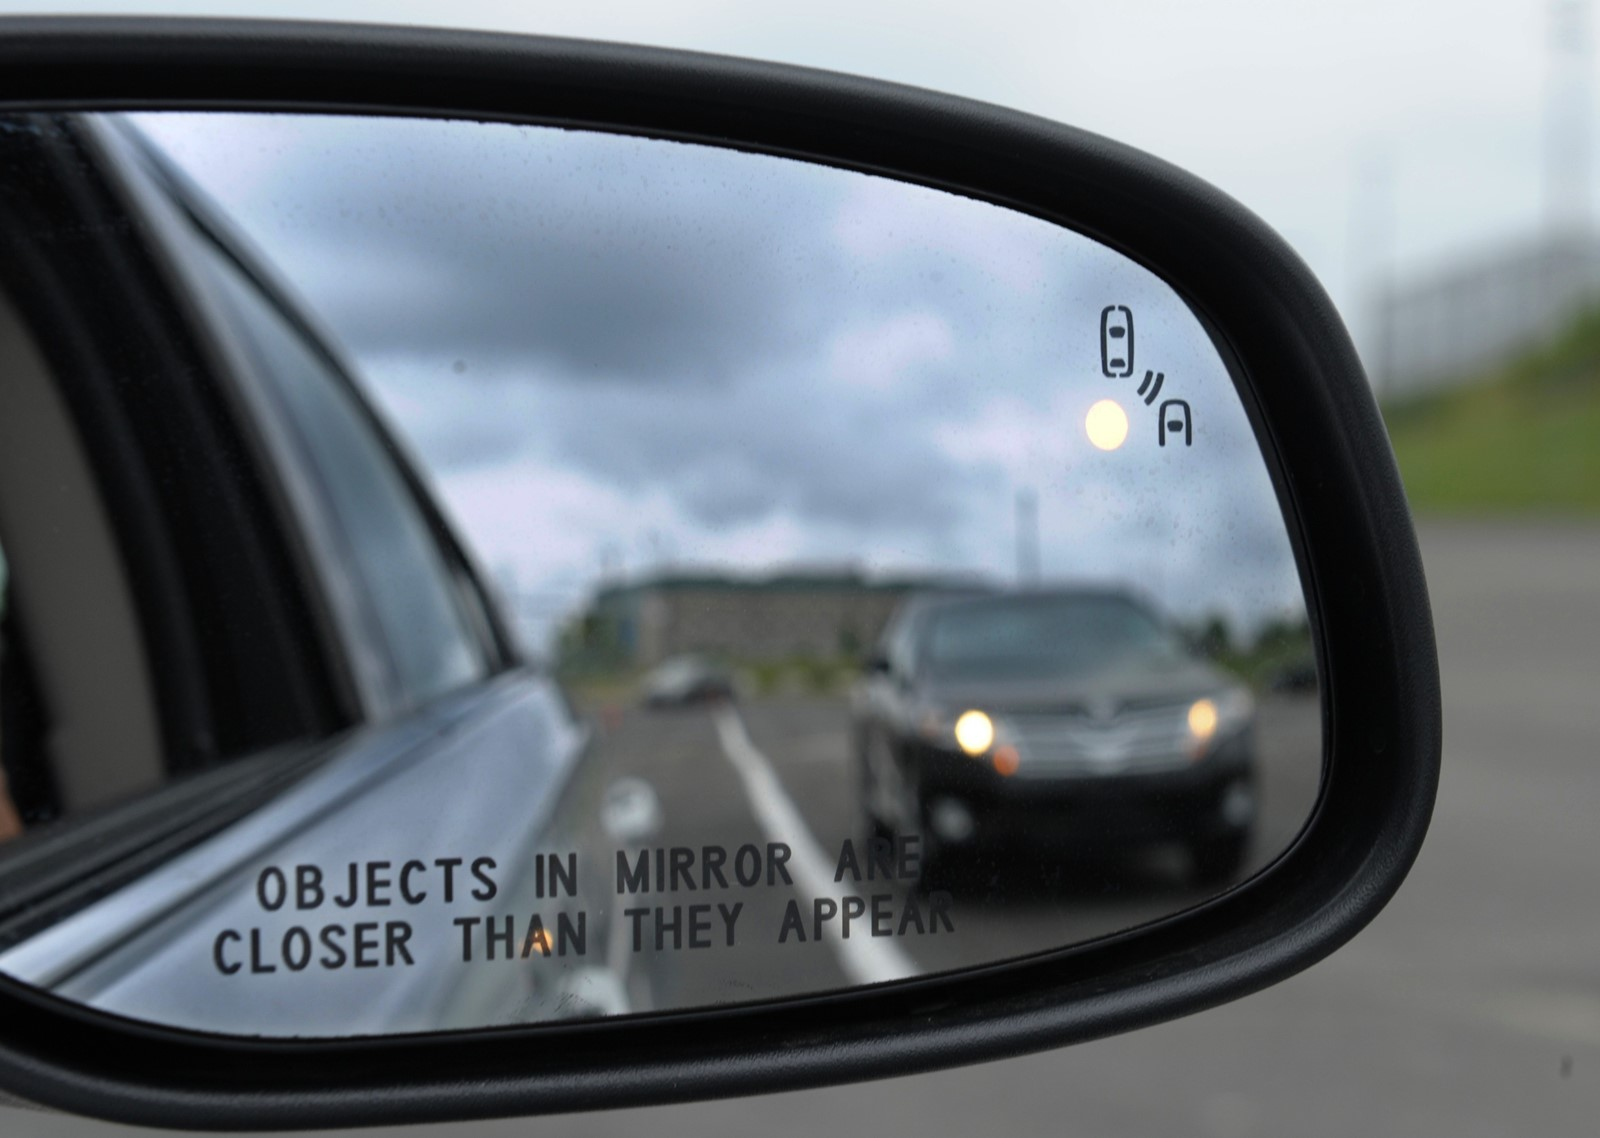 Objects In Mirror May Be Closer Than >> Why Objects In Mirror Are Closer Than They Appear North